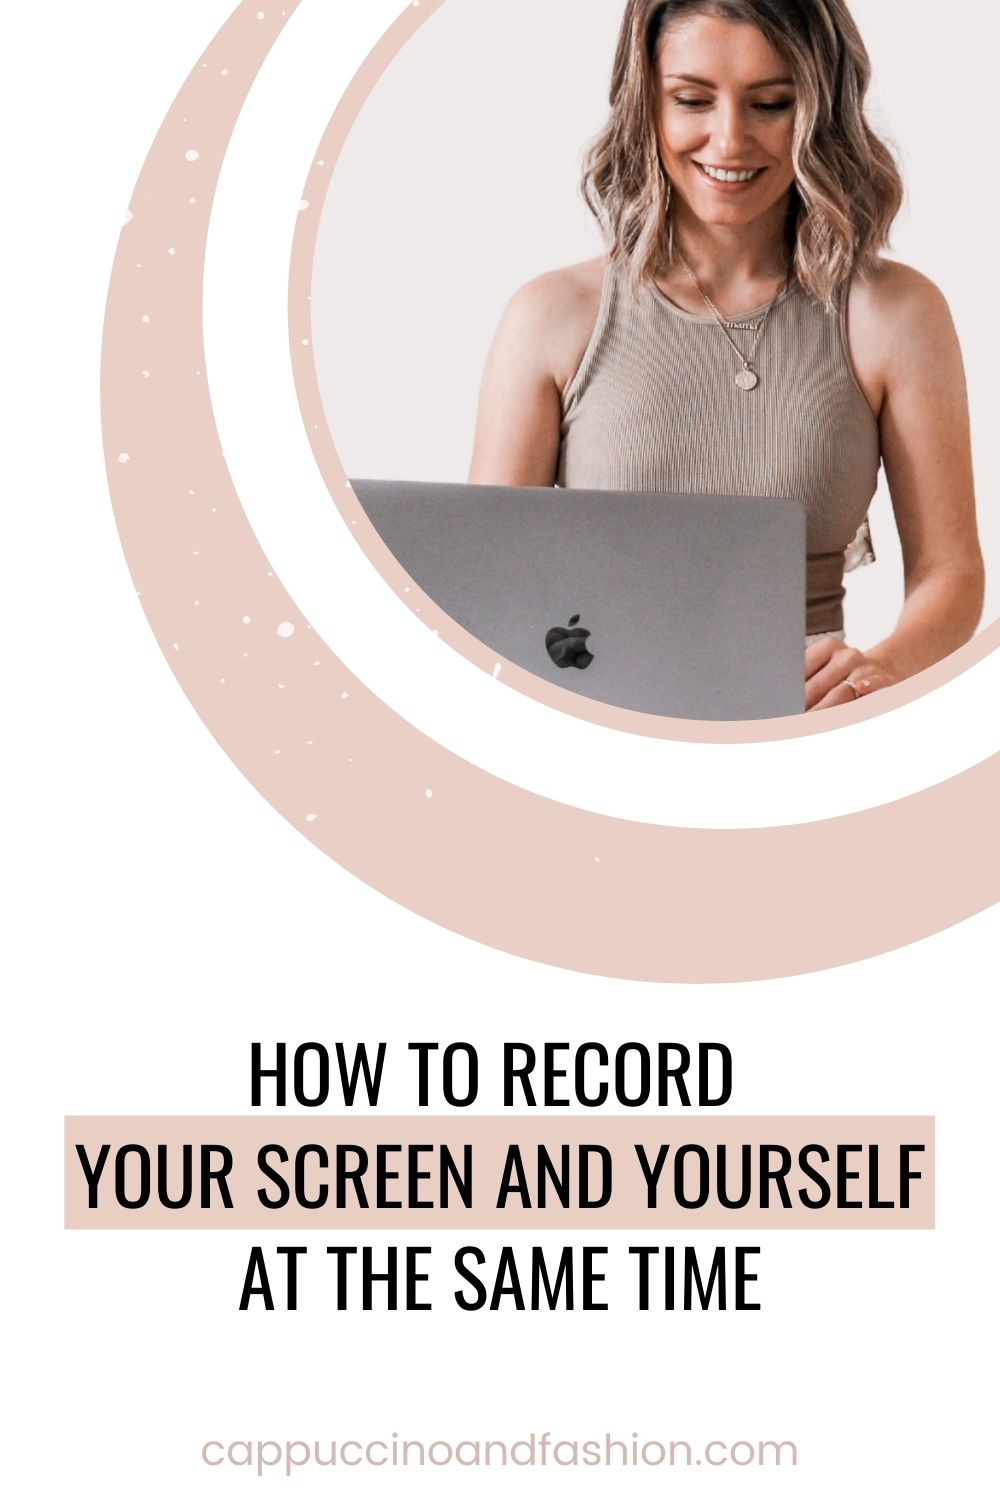 How to Record Your Screen and Yourself At The Same Time